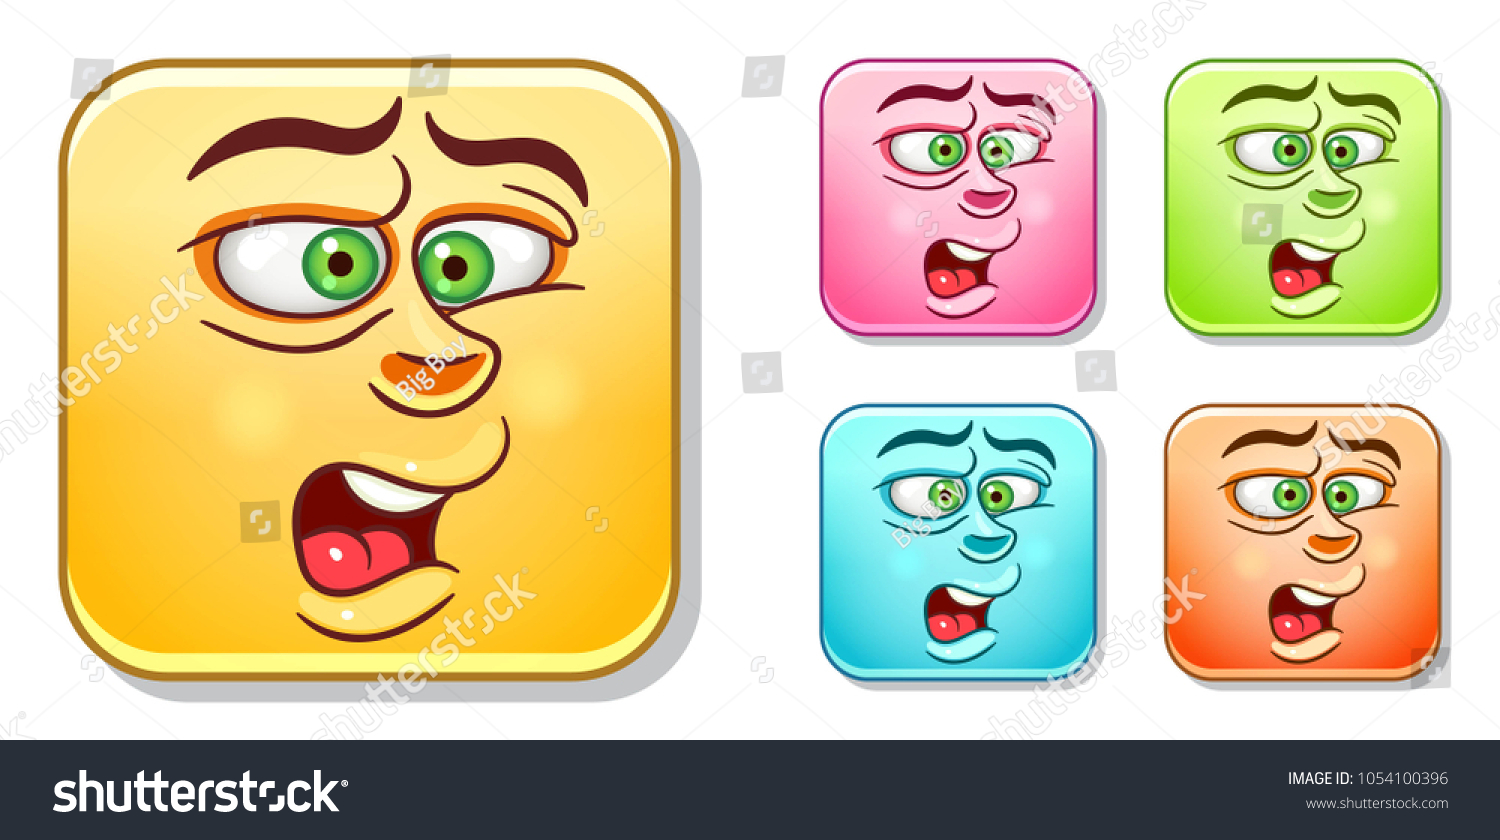 Aggressive disgusted emoji face emoticons collection colorful smiley set avatar symbol internet